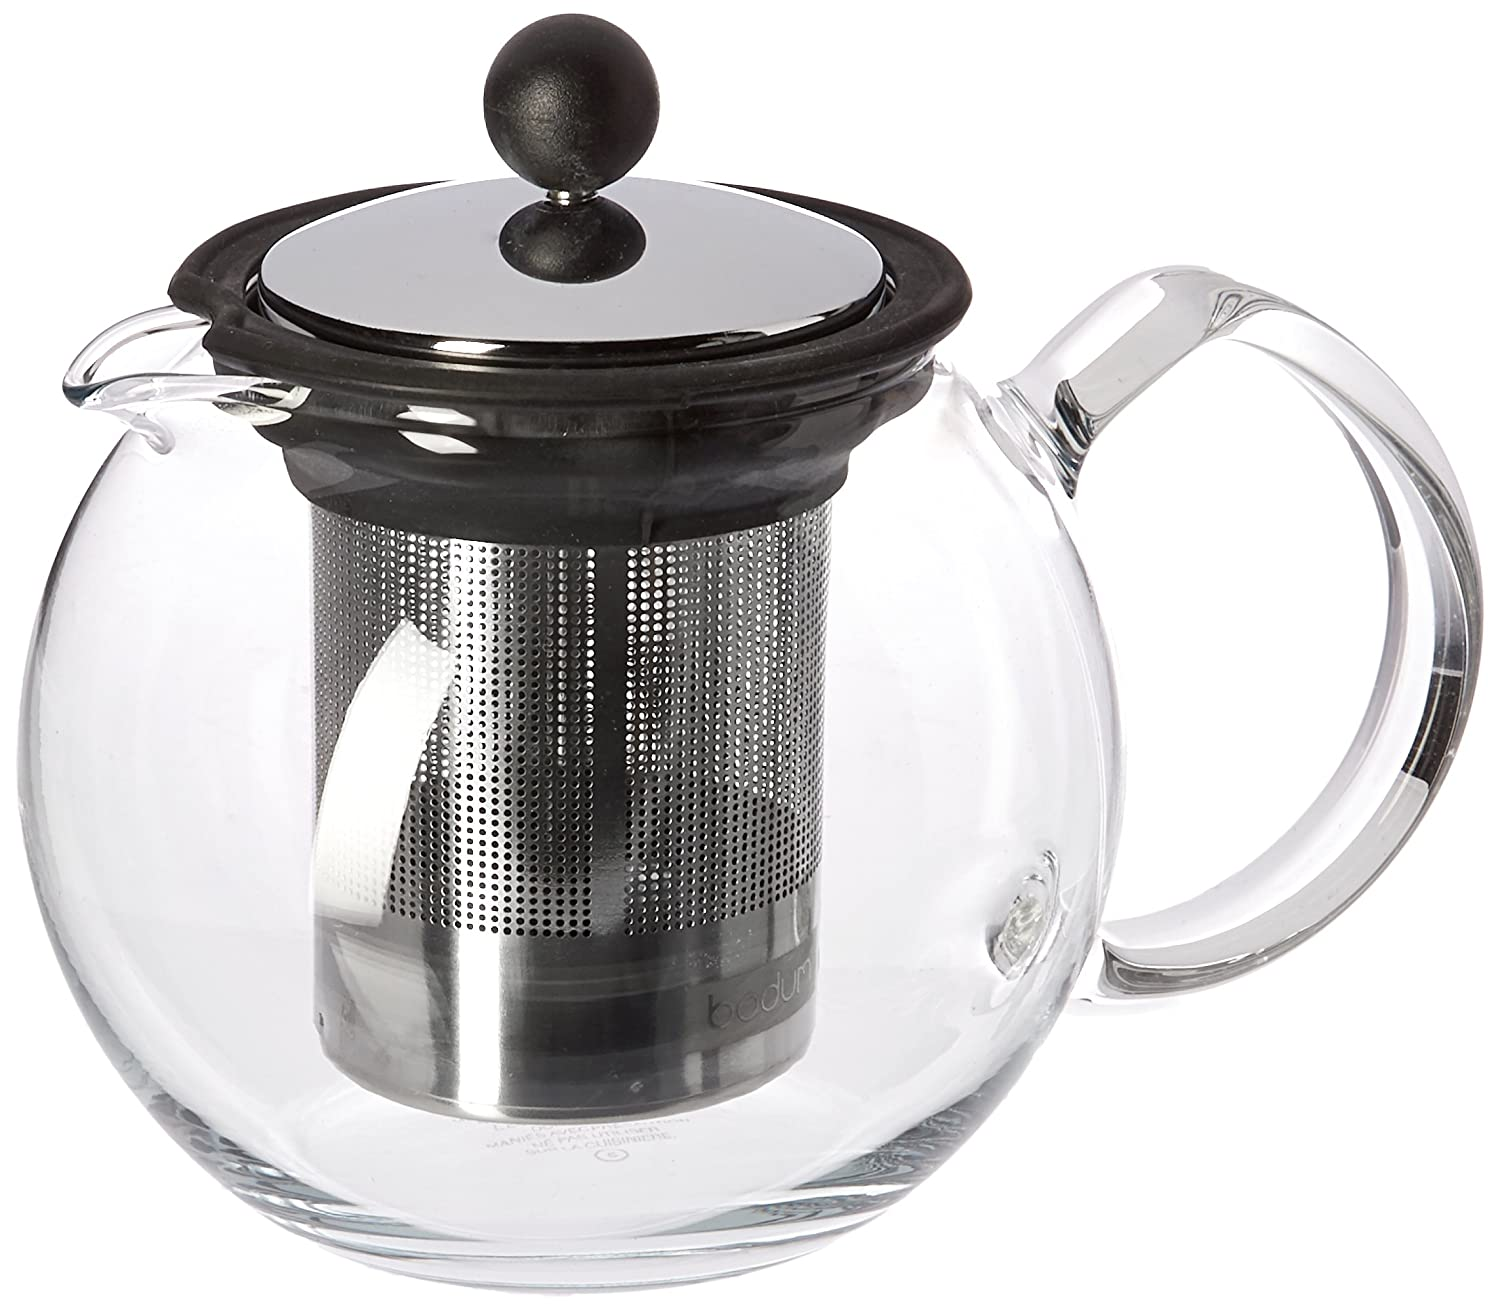 Bodum Assam Tea Press with Stainless Steel Filter